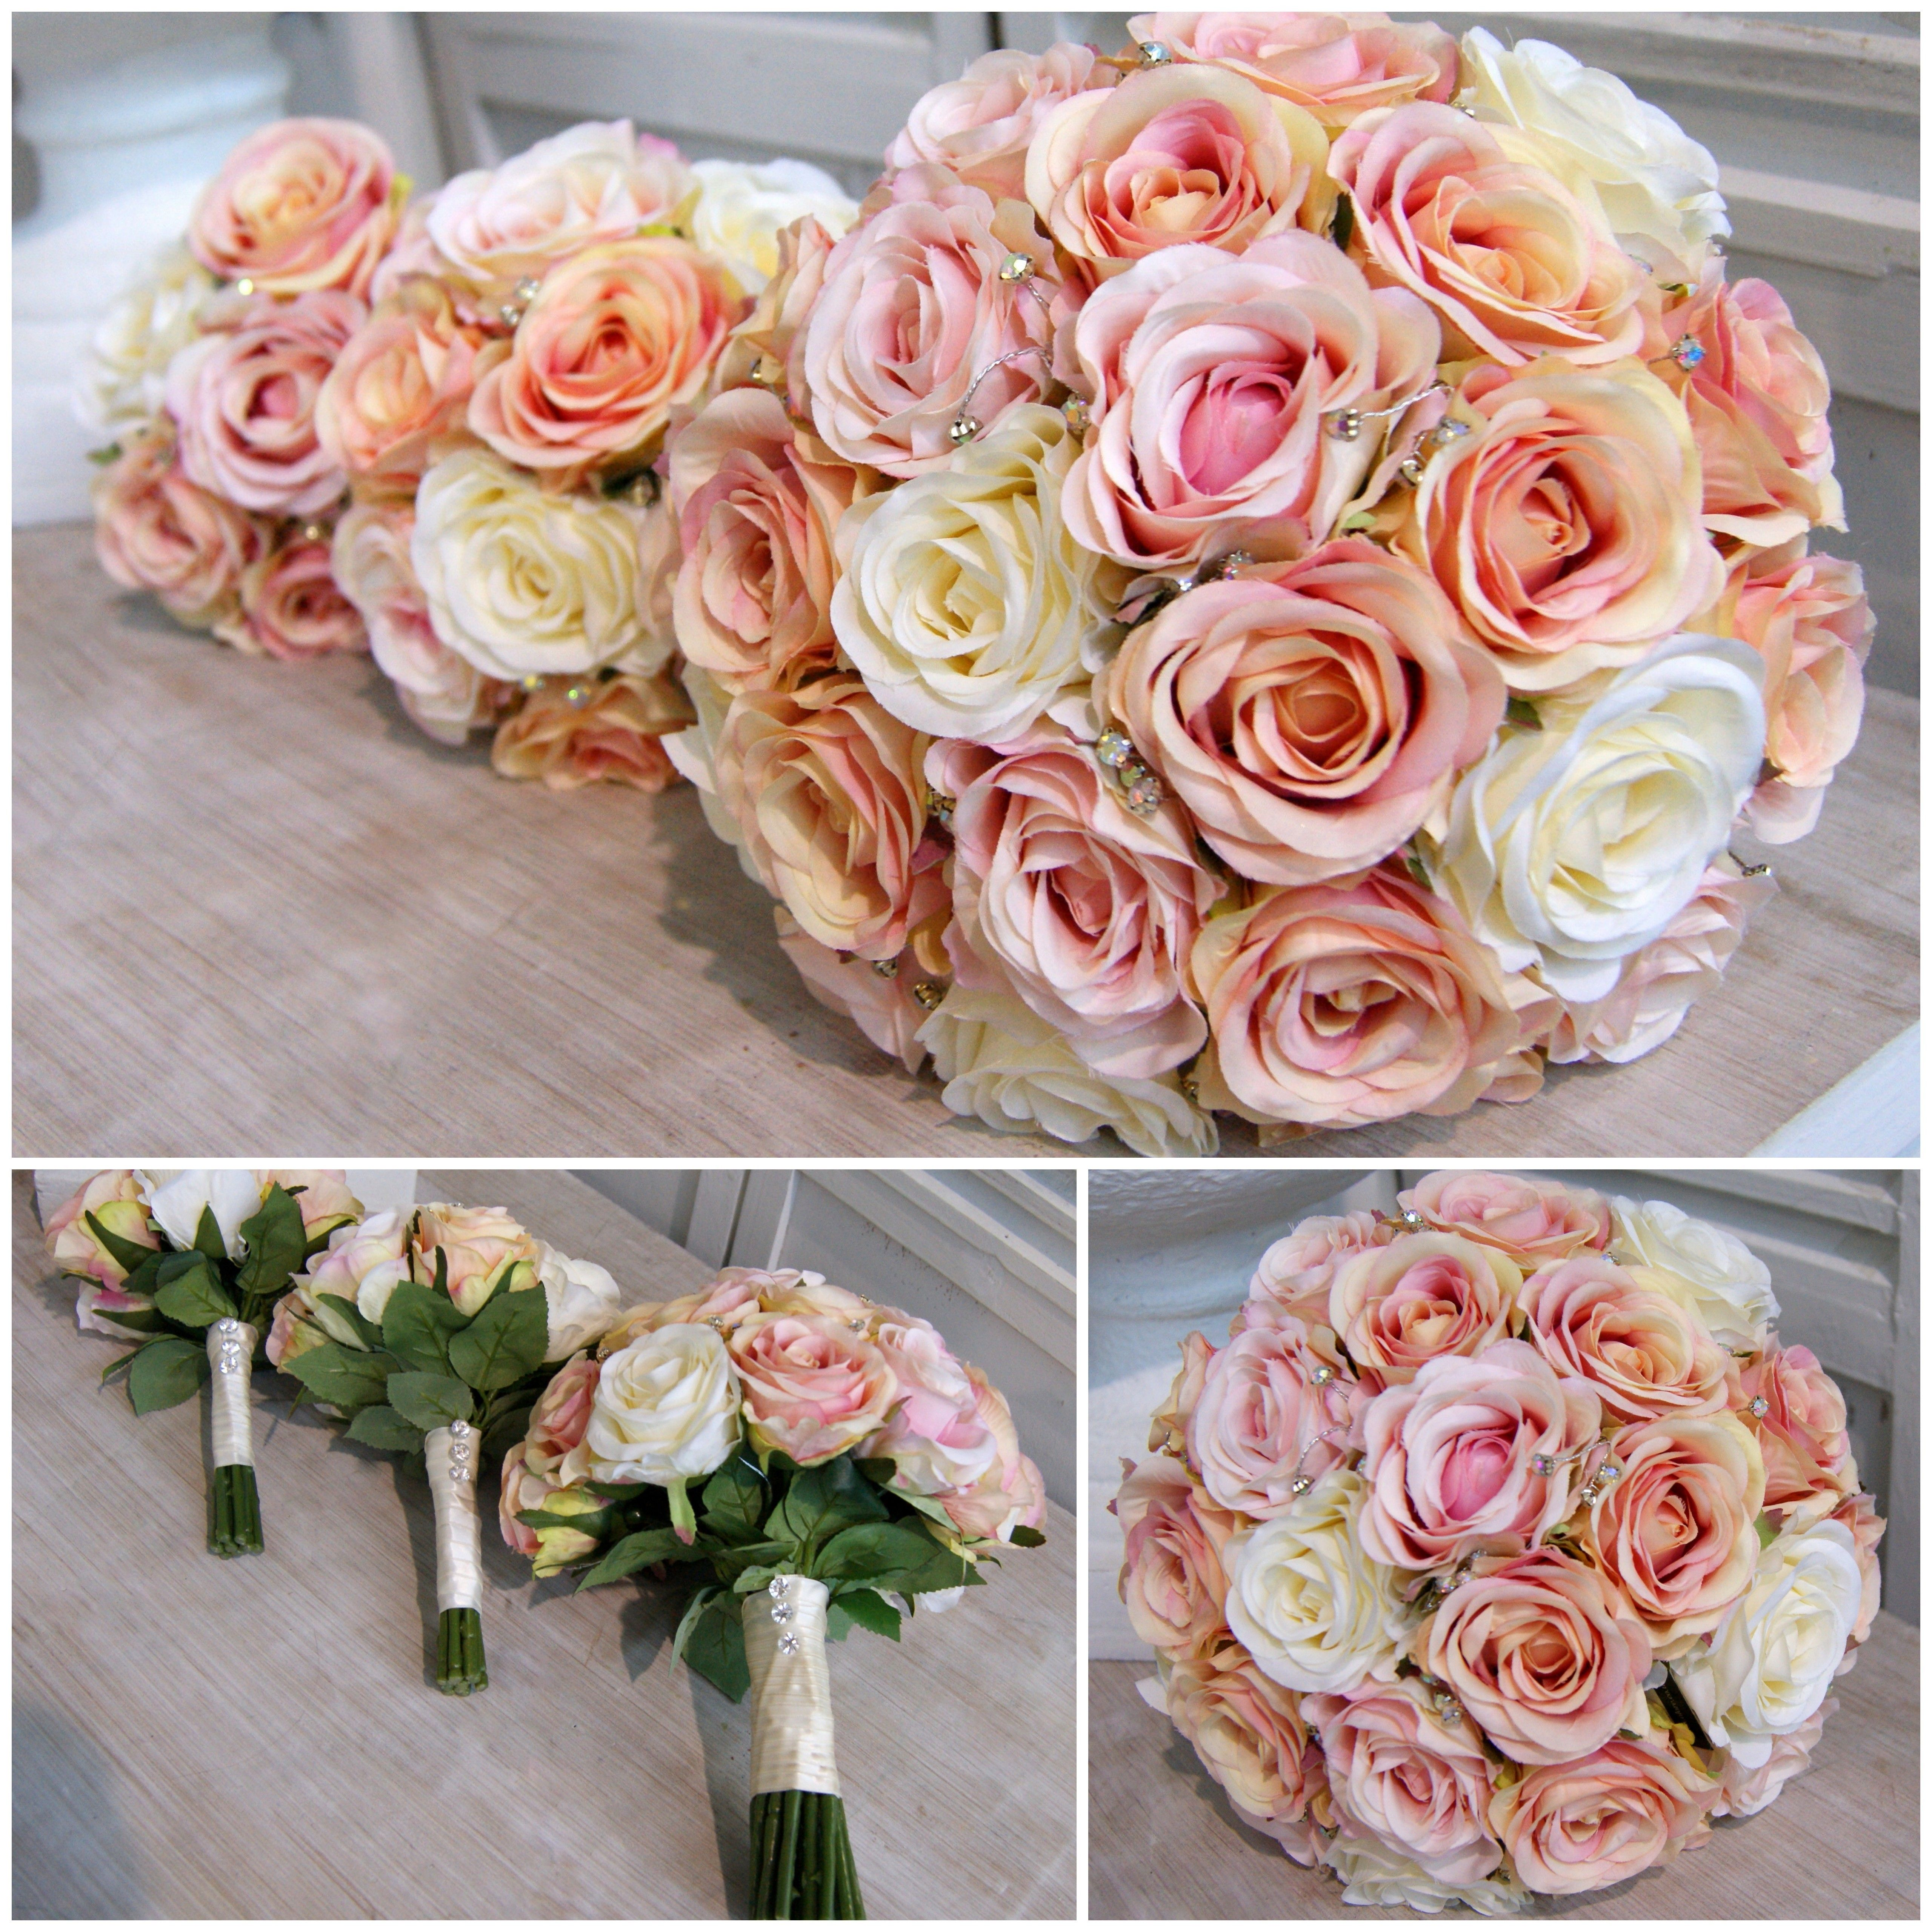 Simple Flower Bouquets For Weddings: Simple Wedding Bouquet Design With Massed Roses In Shades